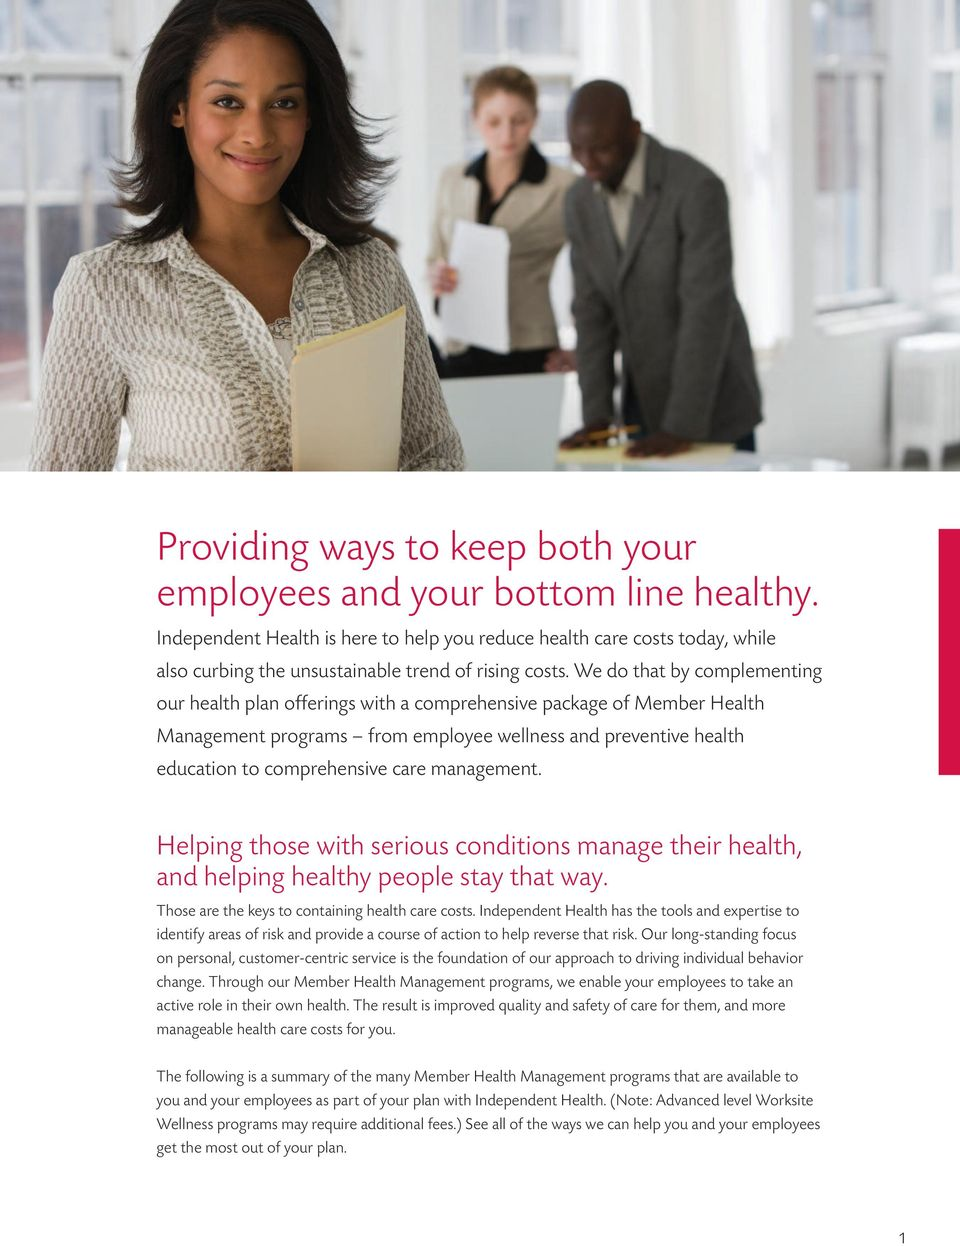 We do that by complementing our health plan offerings with a comprehensive package of Member Health Management programs from employee wellness and preventive health education to comprehensive care